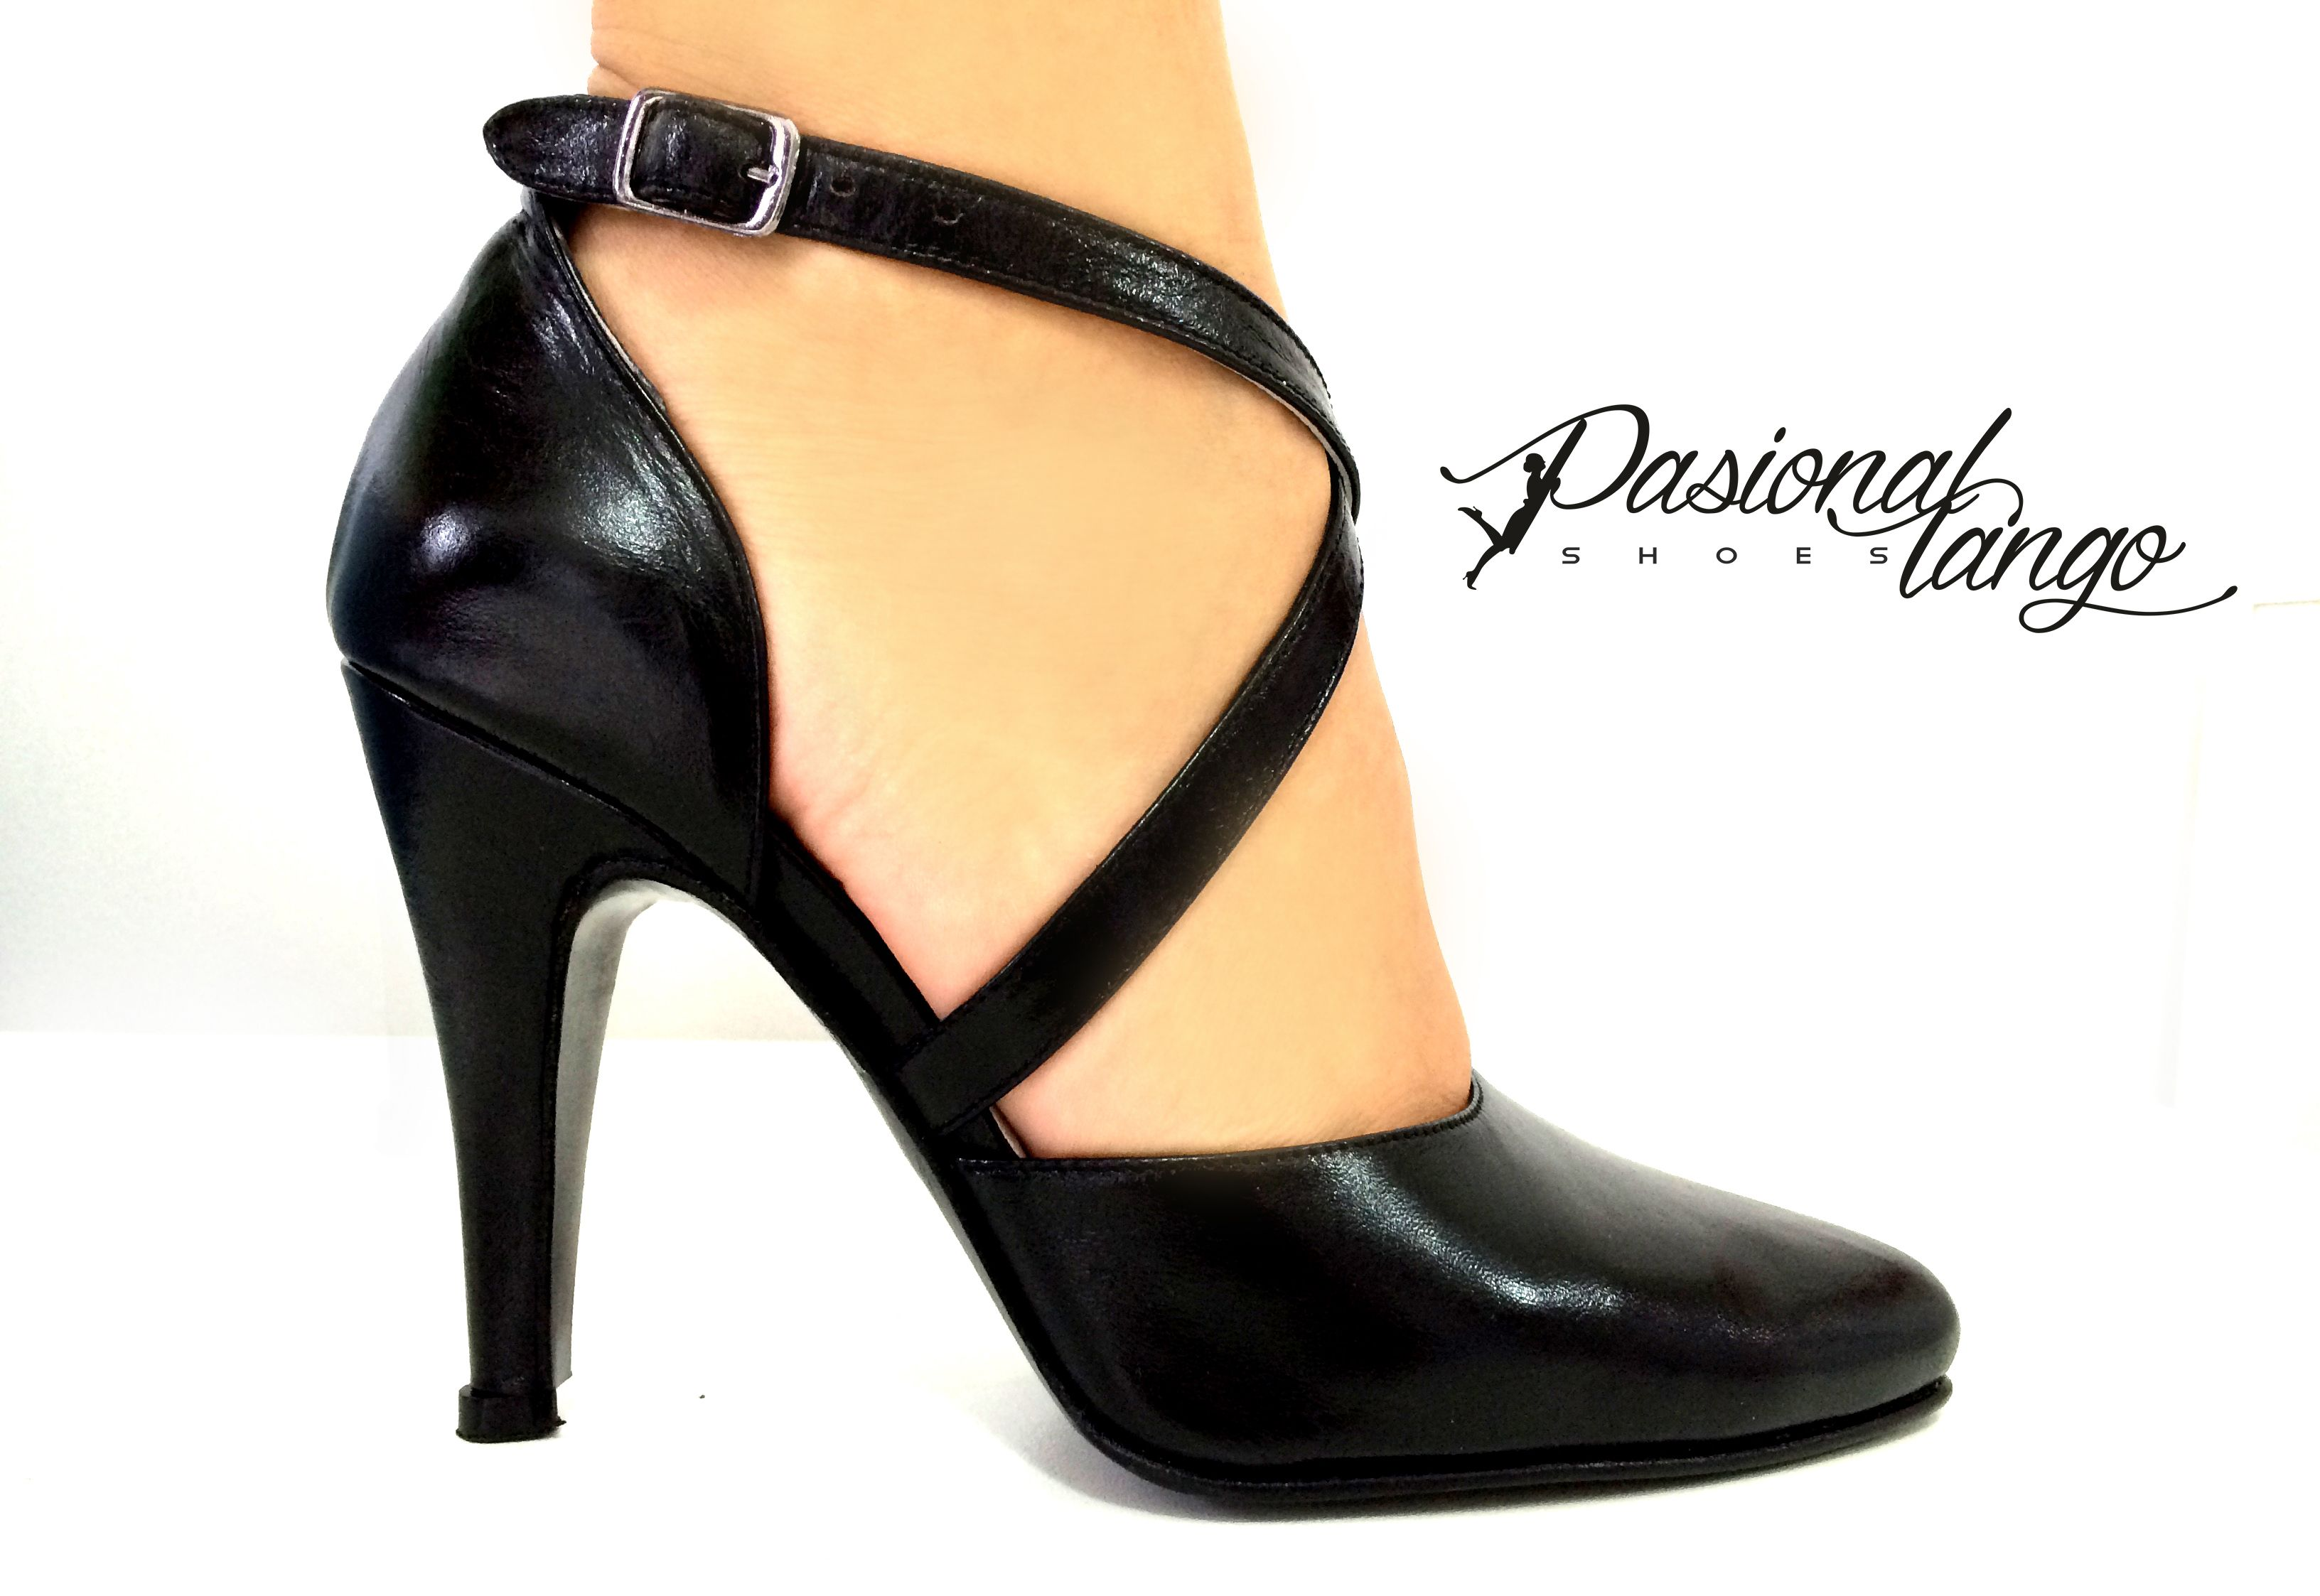 bef7a9aa Zapatos de tango argentinos exclusivamente para mujeres que desean bailar  cómodas y con estilo. Argentinean tango shoes exclusive for women who want  to ...